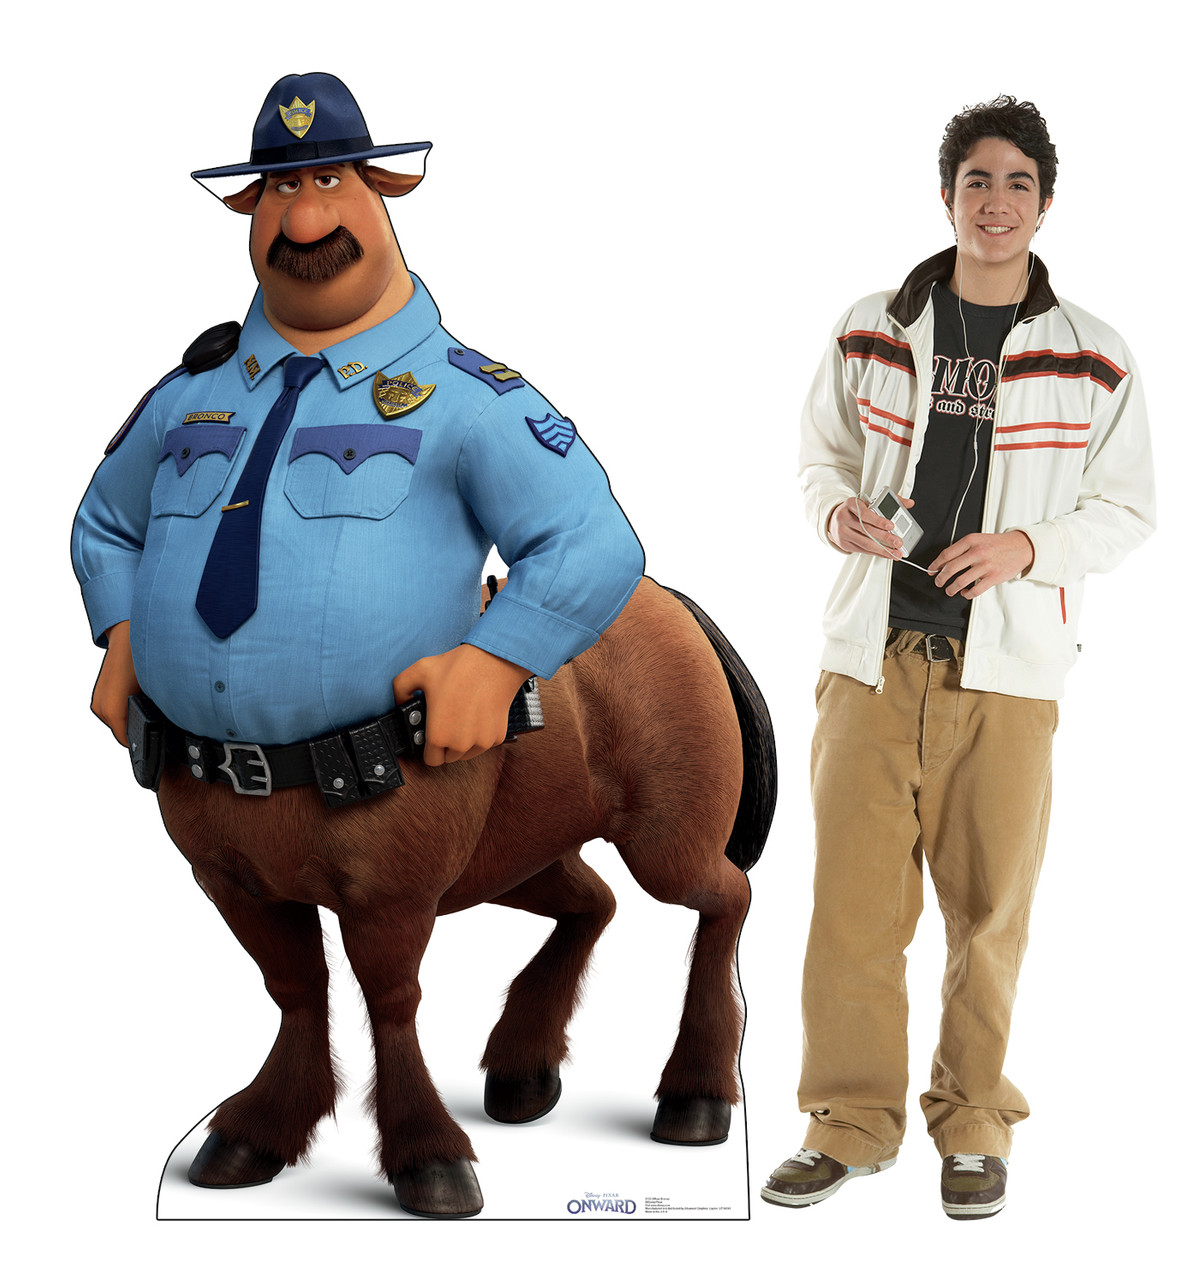 Life-size cardboard standee of Officer Bronco from Disney/Pixar's film Onward with model.